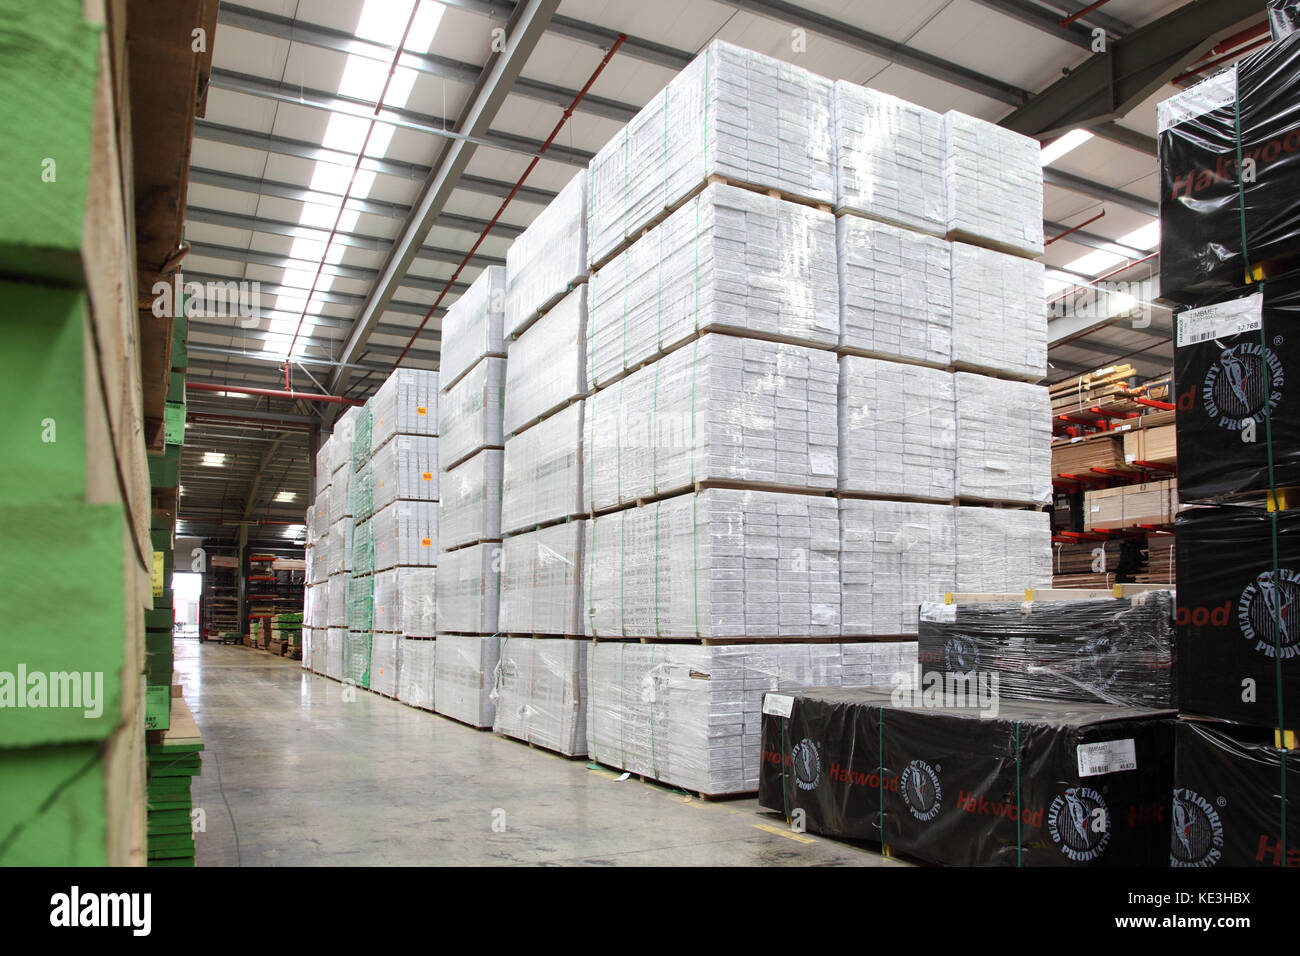 Imported timber planks and sheet products stacked in a modern, UK distribution warehouse. - Stock Image